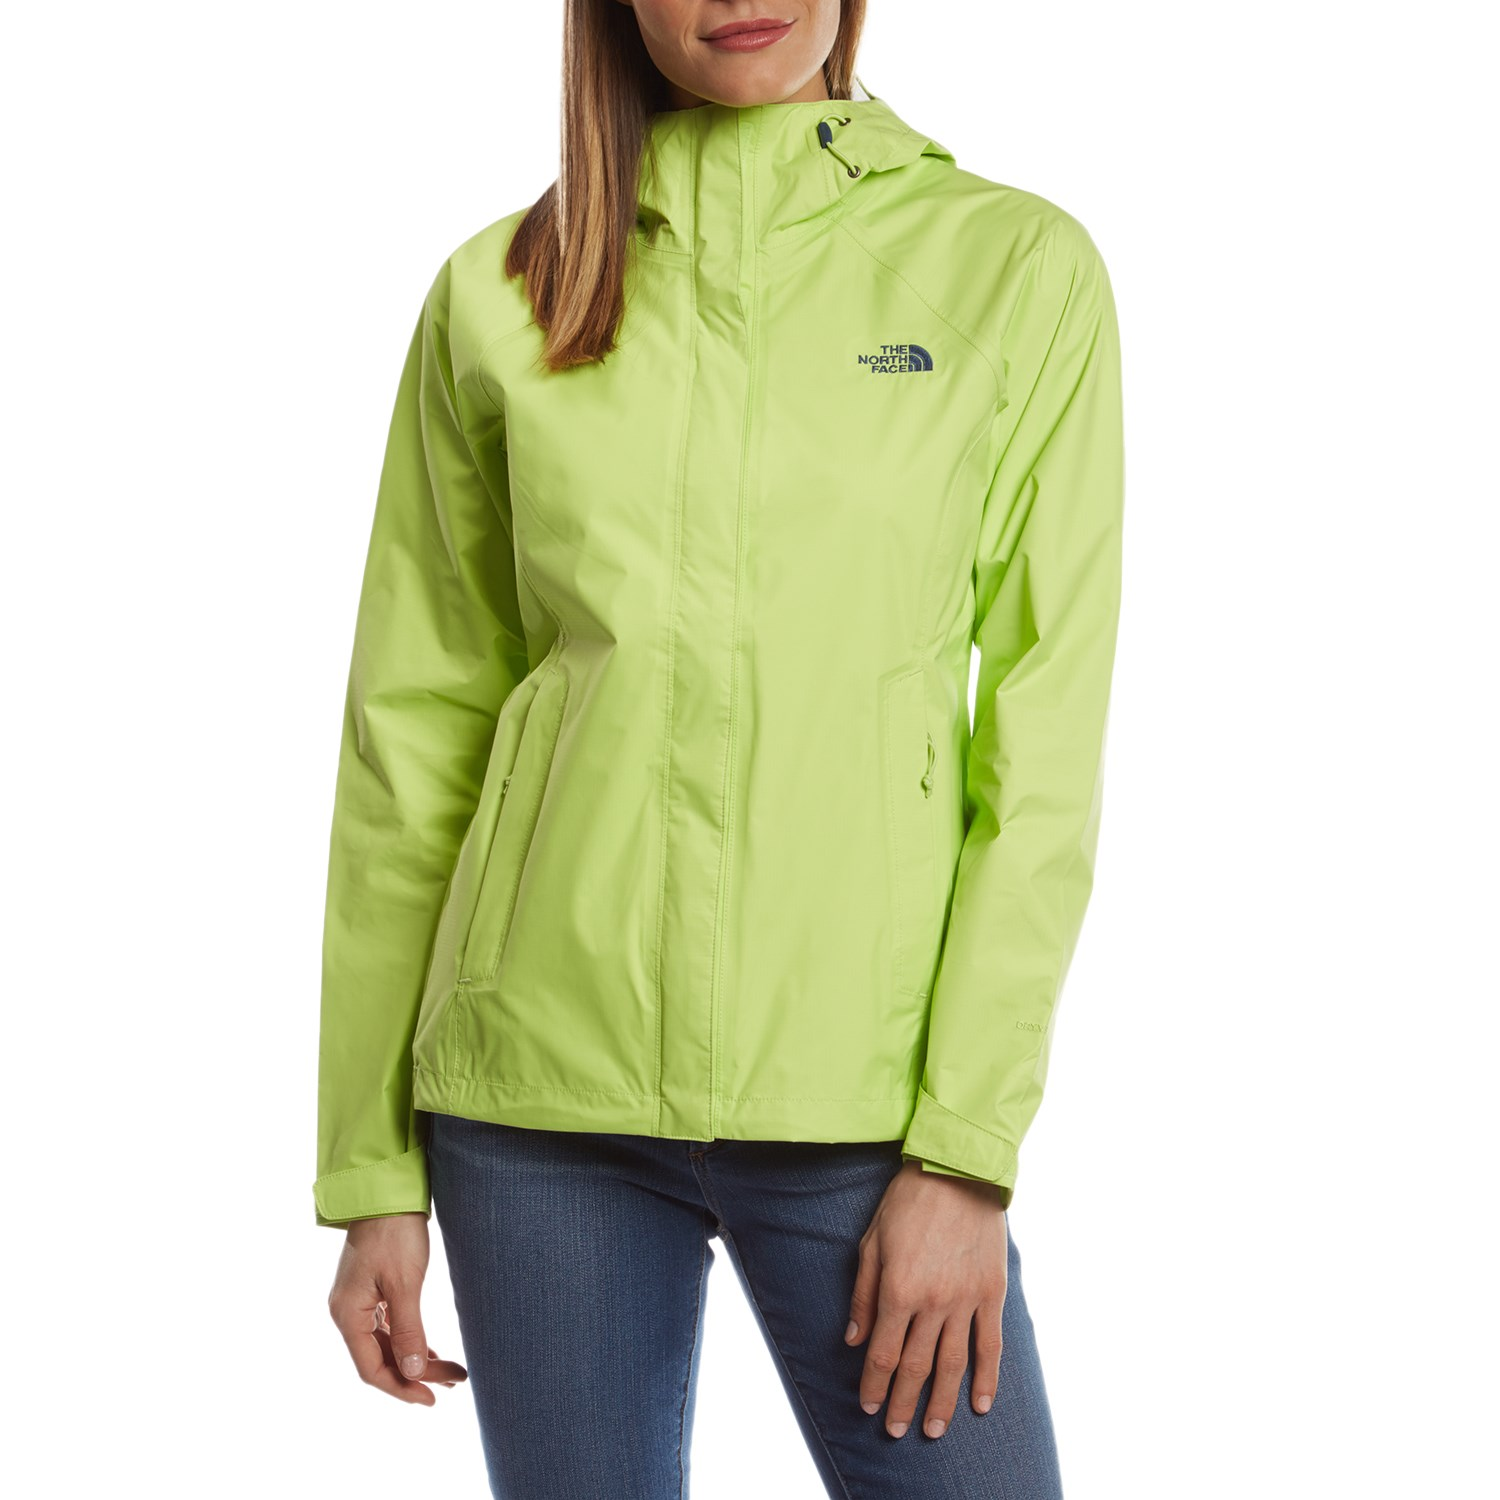 1d6ae85142 The North Face Venture Jacket - Women s